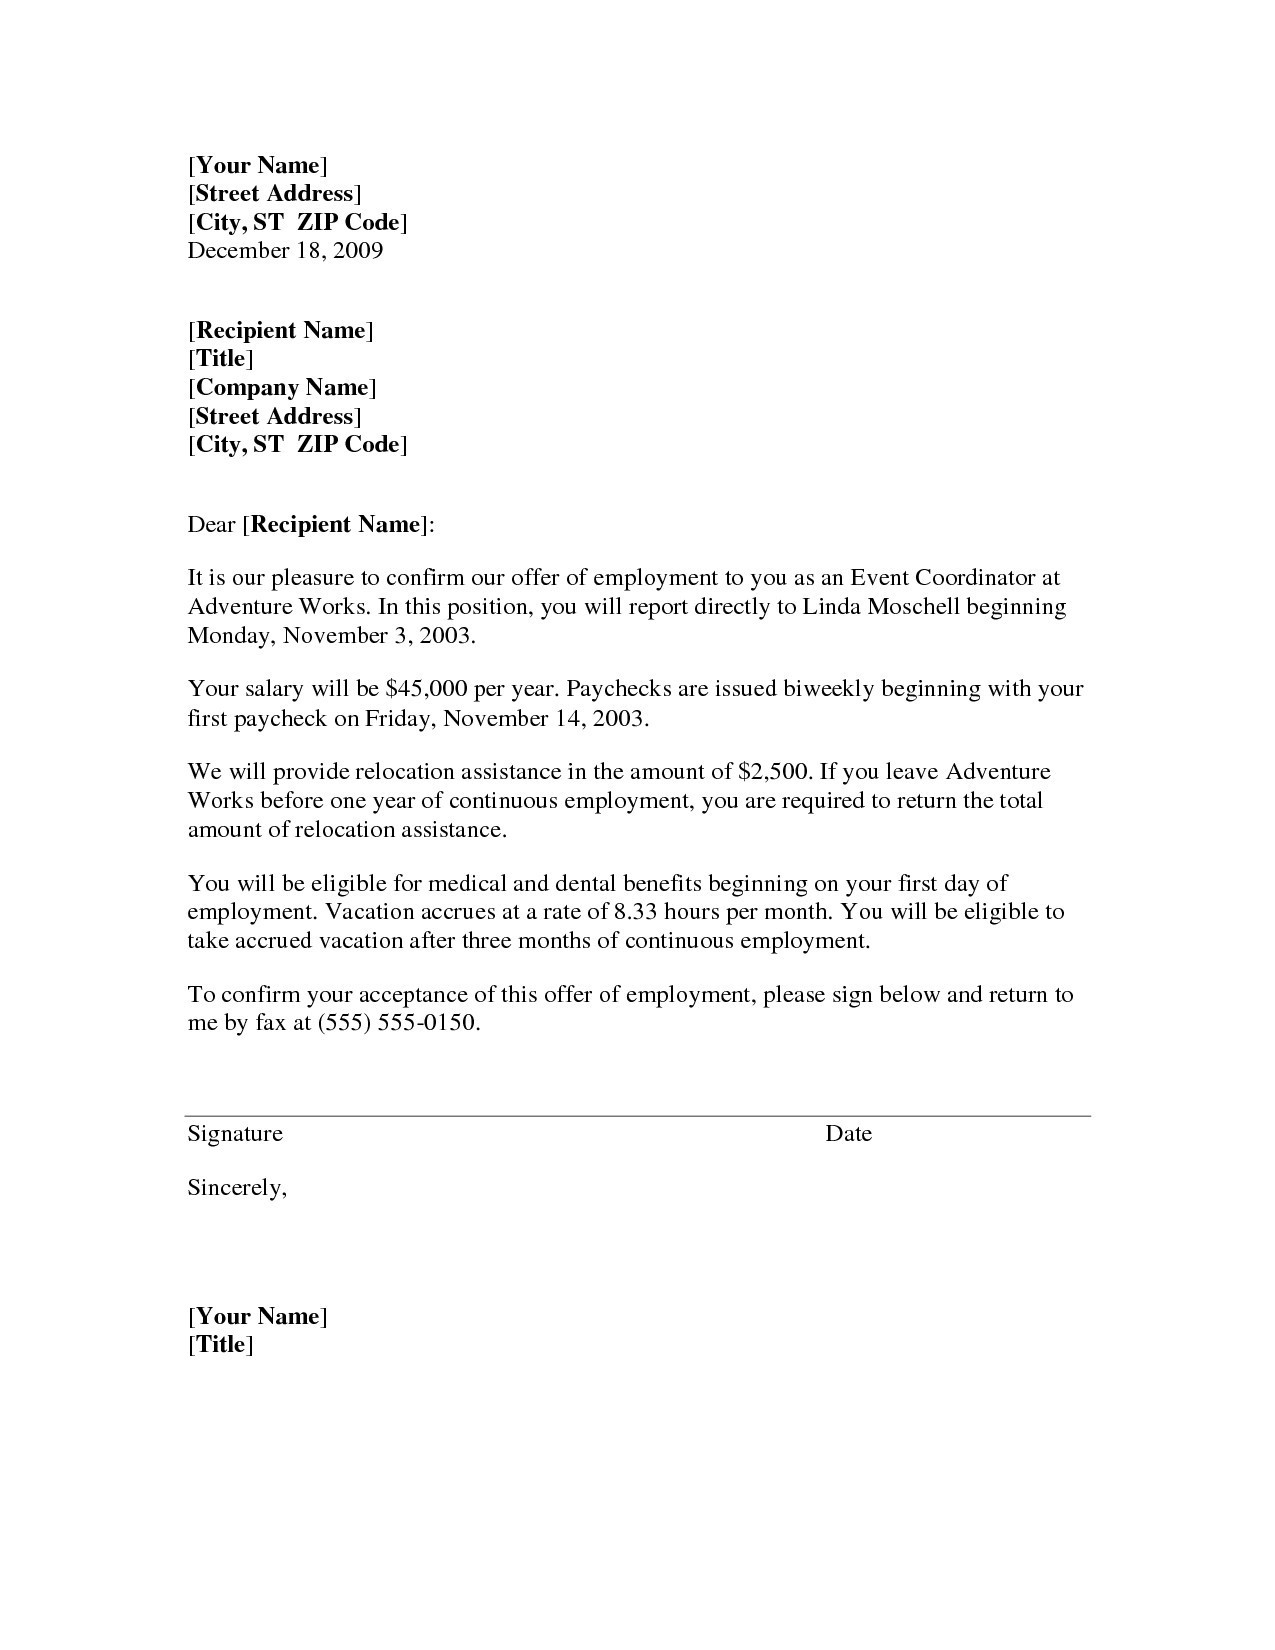 Temp to Perm Offer Letter Template - Job Transfer Letter From Employer Save Appointment Letter Template